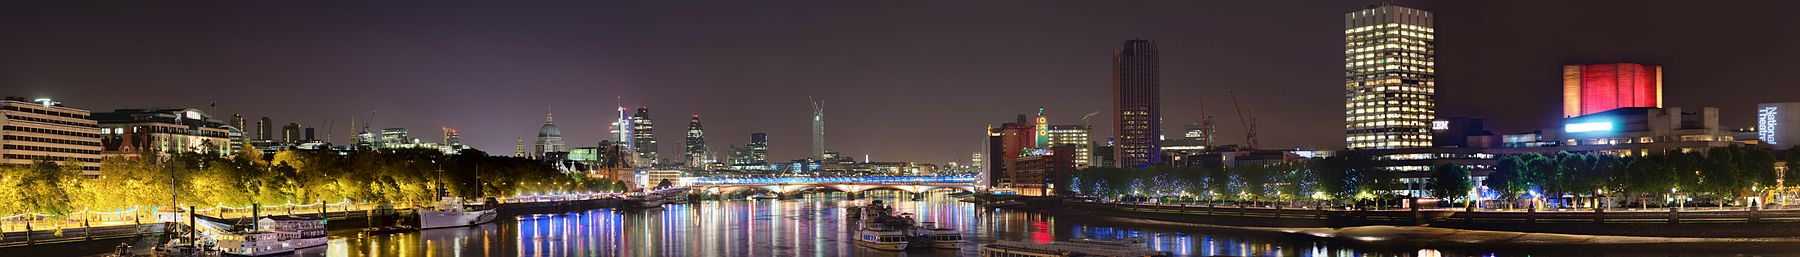 London's South Bank By Night Banner.jpg